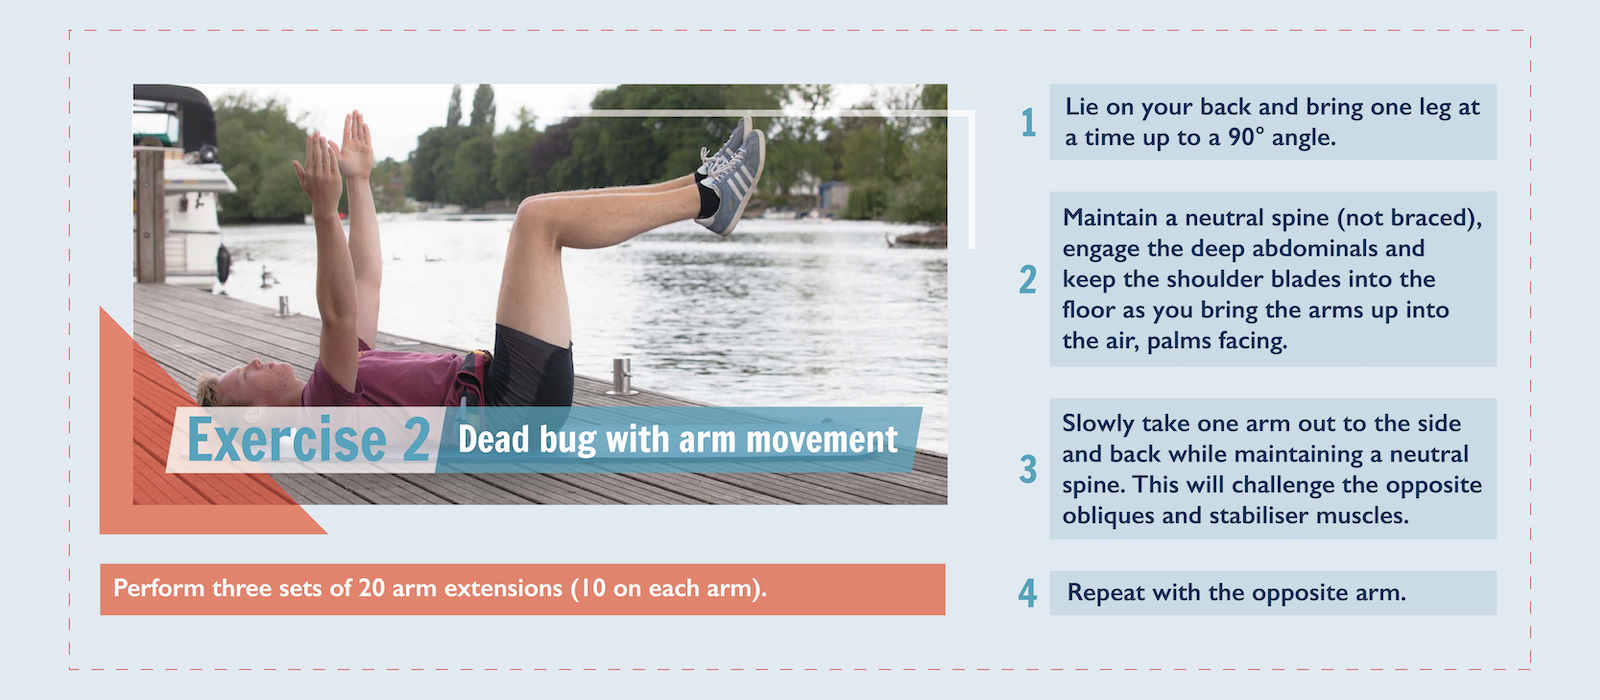 Exercise 2: A graphic explaining the dead bug position. There is a photograph of a man laying on a mat. His arms are raised pointing towards the sky and his legs are elevated and knees bent at a right angle. Step one: Lie on your back and bring one leg at a time up to a 90° angle. Step 2: Maintain a neutral spine (not braced), engage the deep abdominals and keep the shoulder blades into the floor as you bring the arms up into the air, palms facing. Step three: Slowly take one arm out to the side and back while maintaining a neutral spine. This will challenge the opposite obliques and stabiliser muscles. Step four: Repeat with the opposite arm. Perform three sets of 20 arm extensions (10 on each arm).